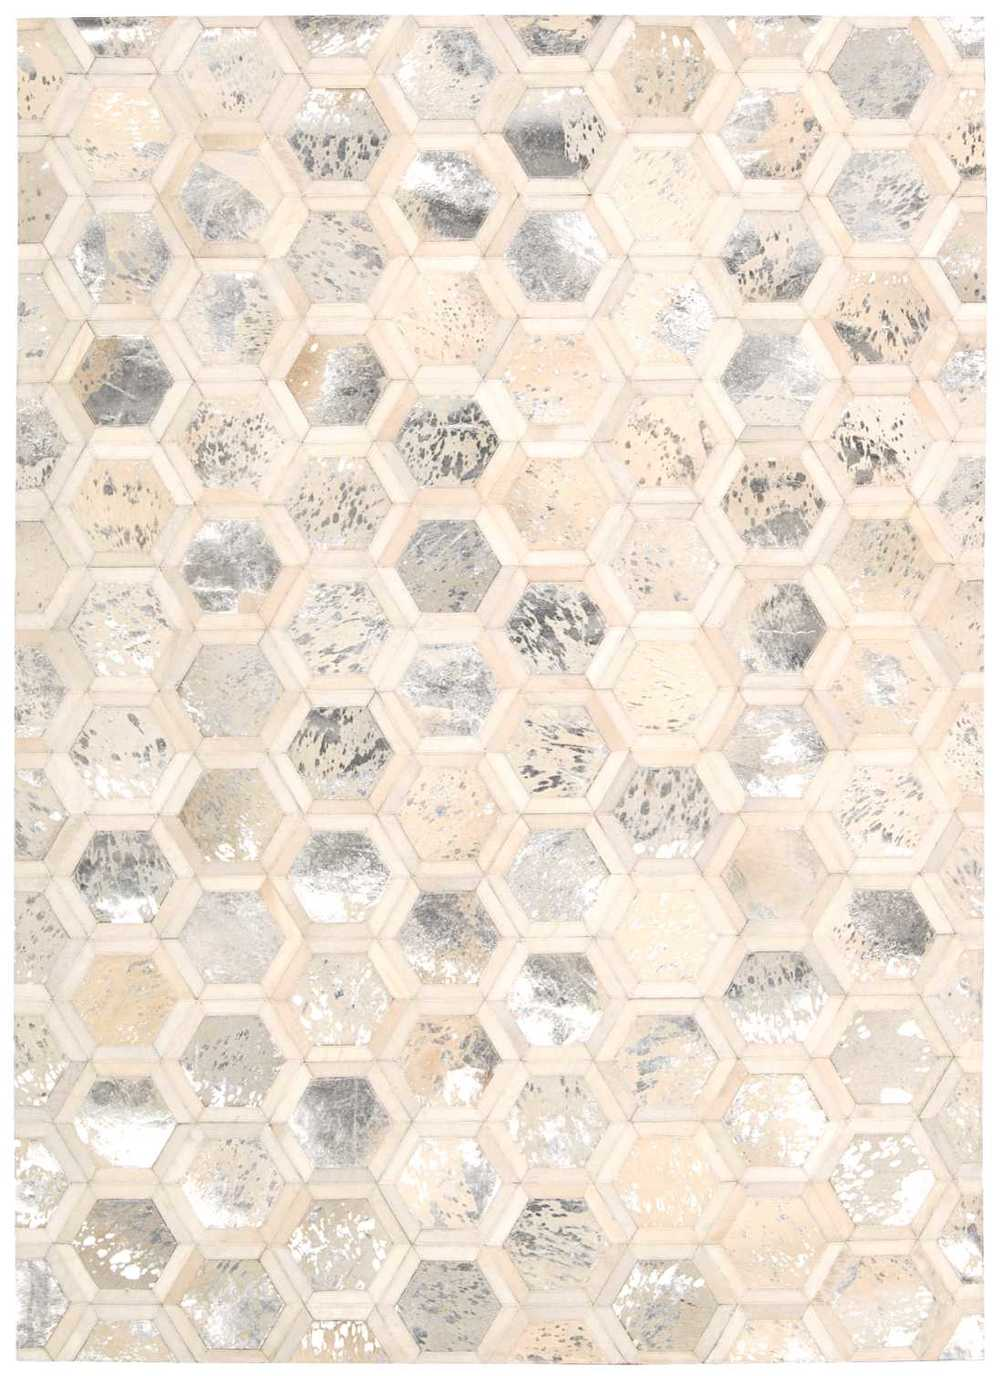 Nourison Industries - Michael Amini Ma01 City Chic Rug